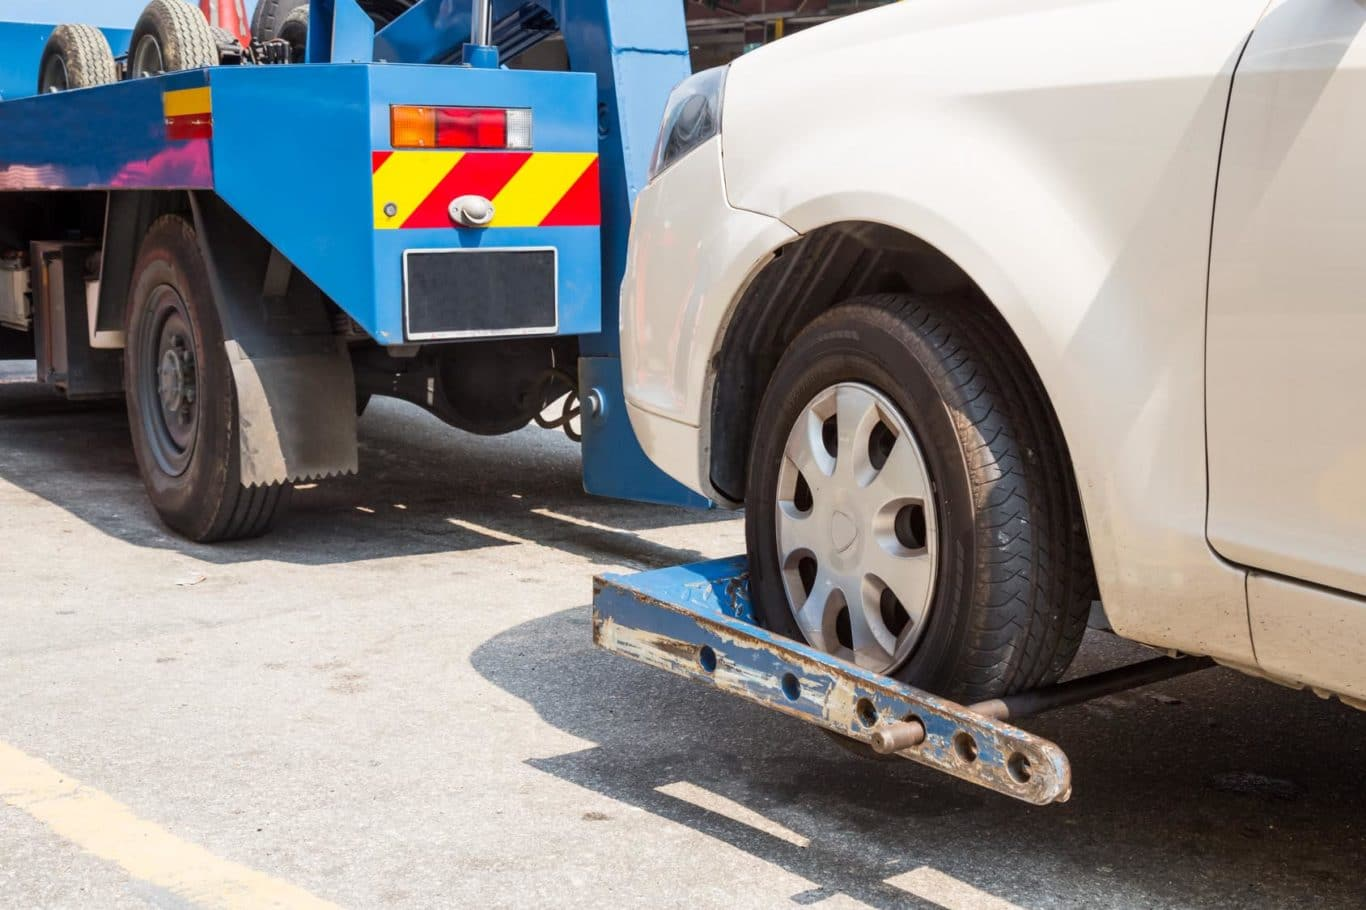 Castledermot expert Breakdown Assistance services